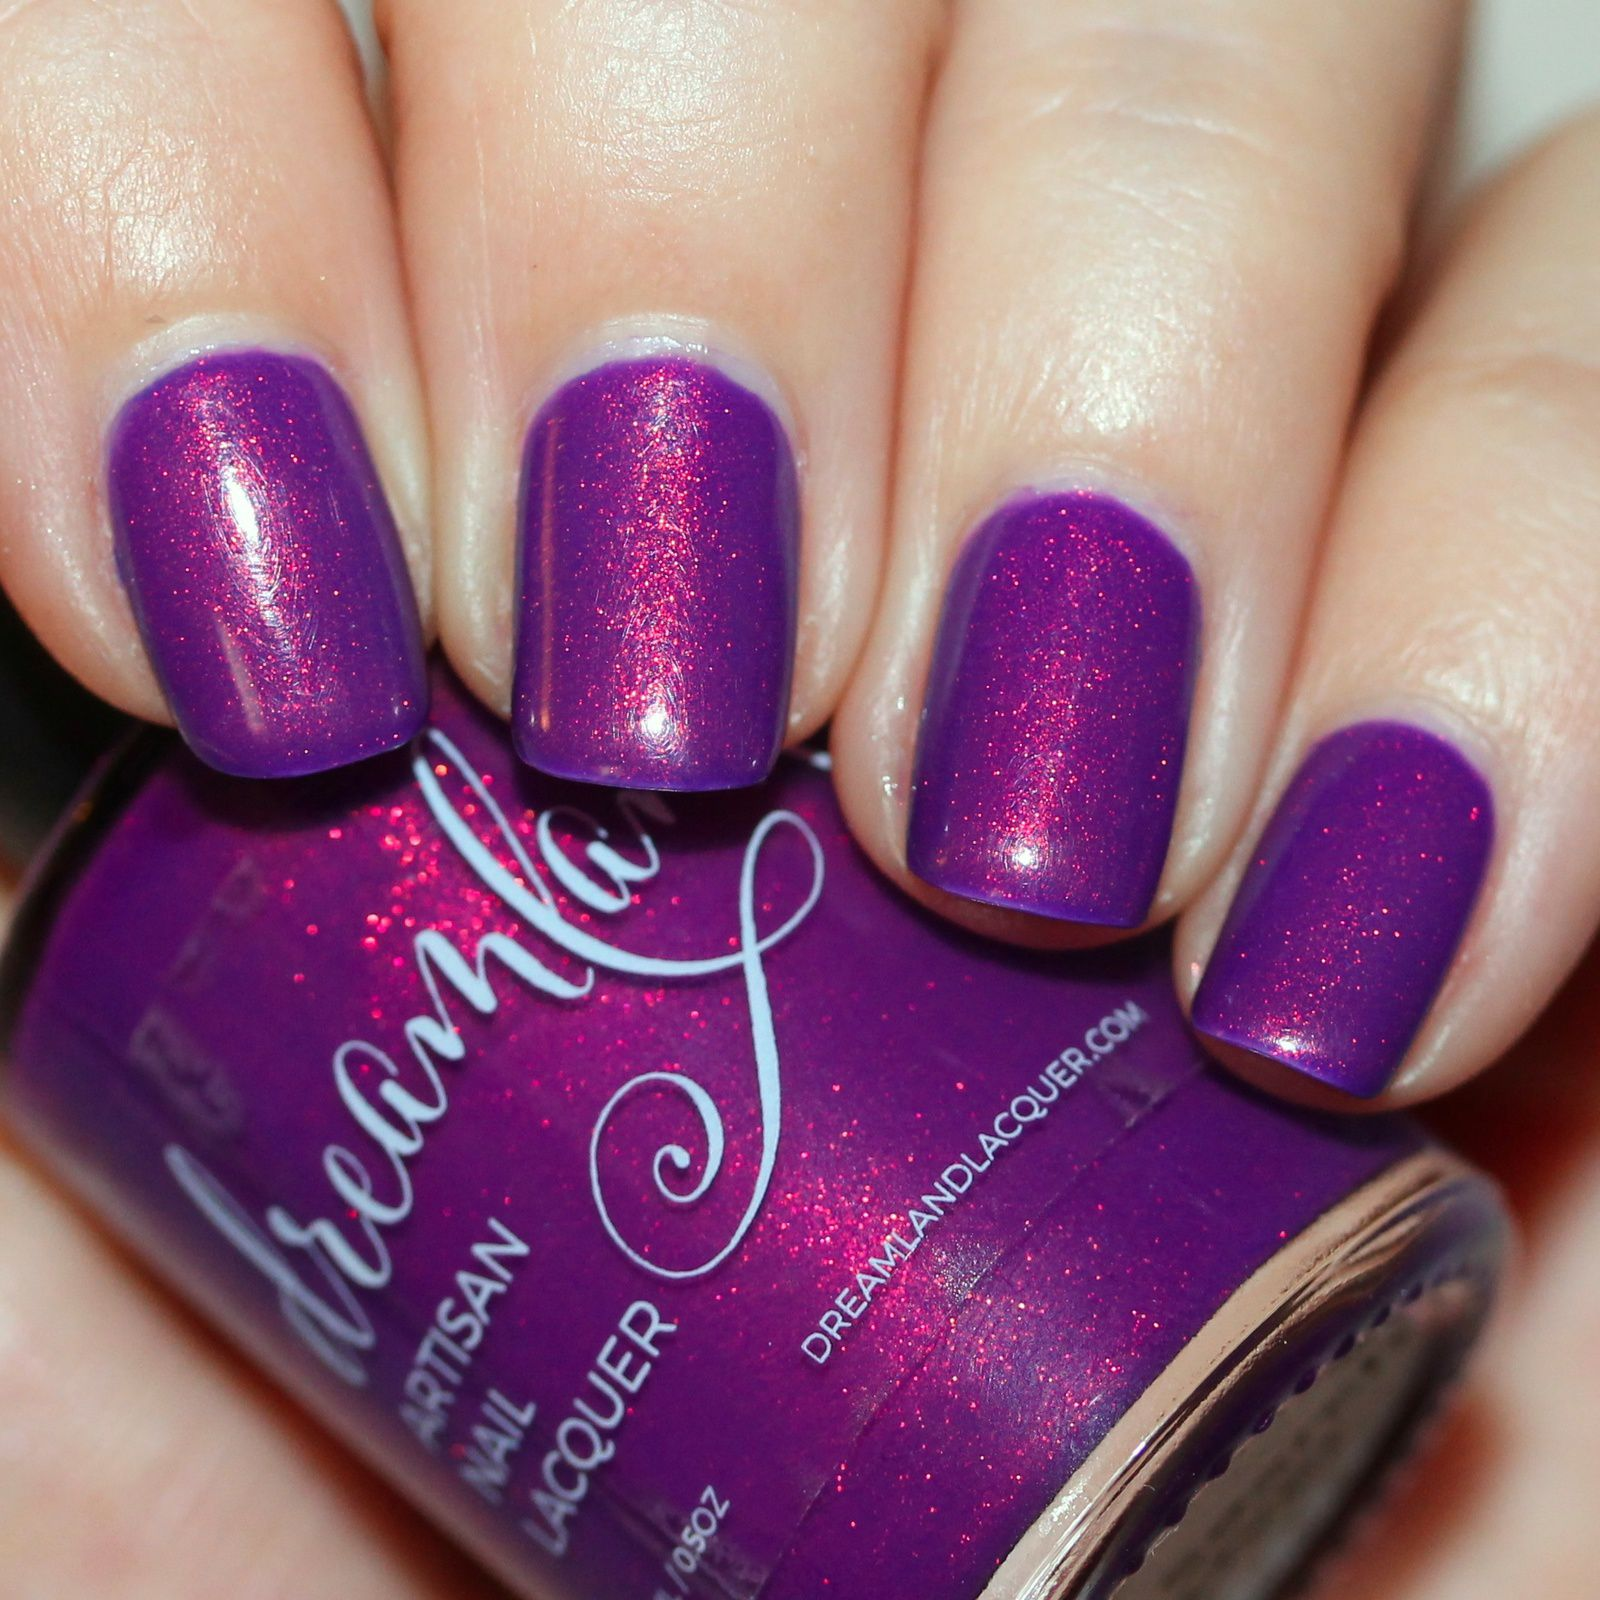 Sally Hansen Complete Care 4-in-1 Extra Moisturizing Nail Treatment / Mavala Nail Shield Phase I Nylon Fibers / Essence Passion for Fashion / Dreamland Lacquer The Search is Over / Poshe Top Coat